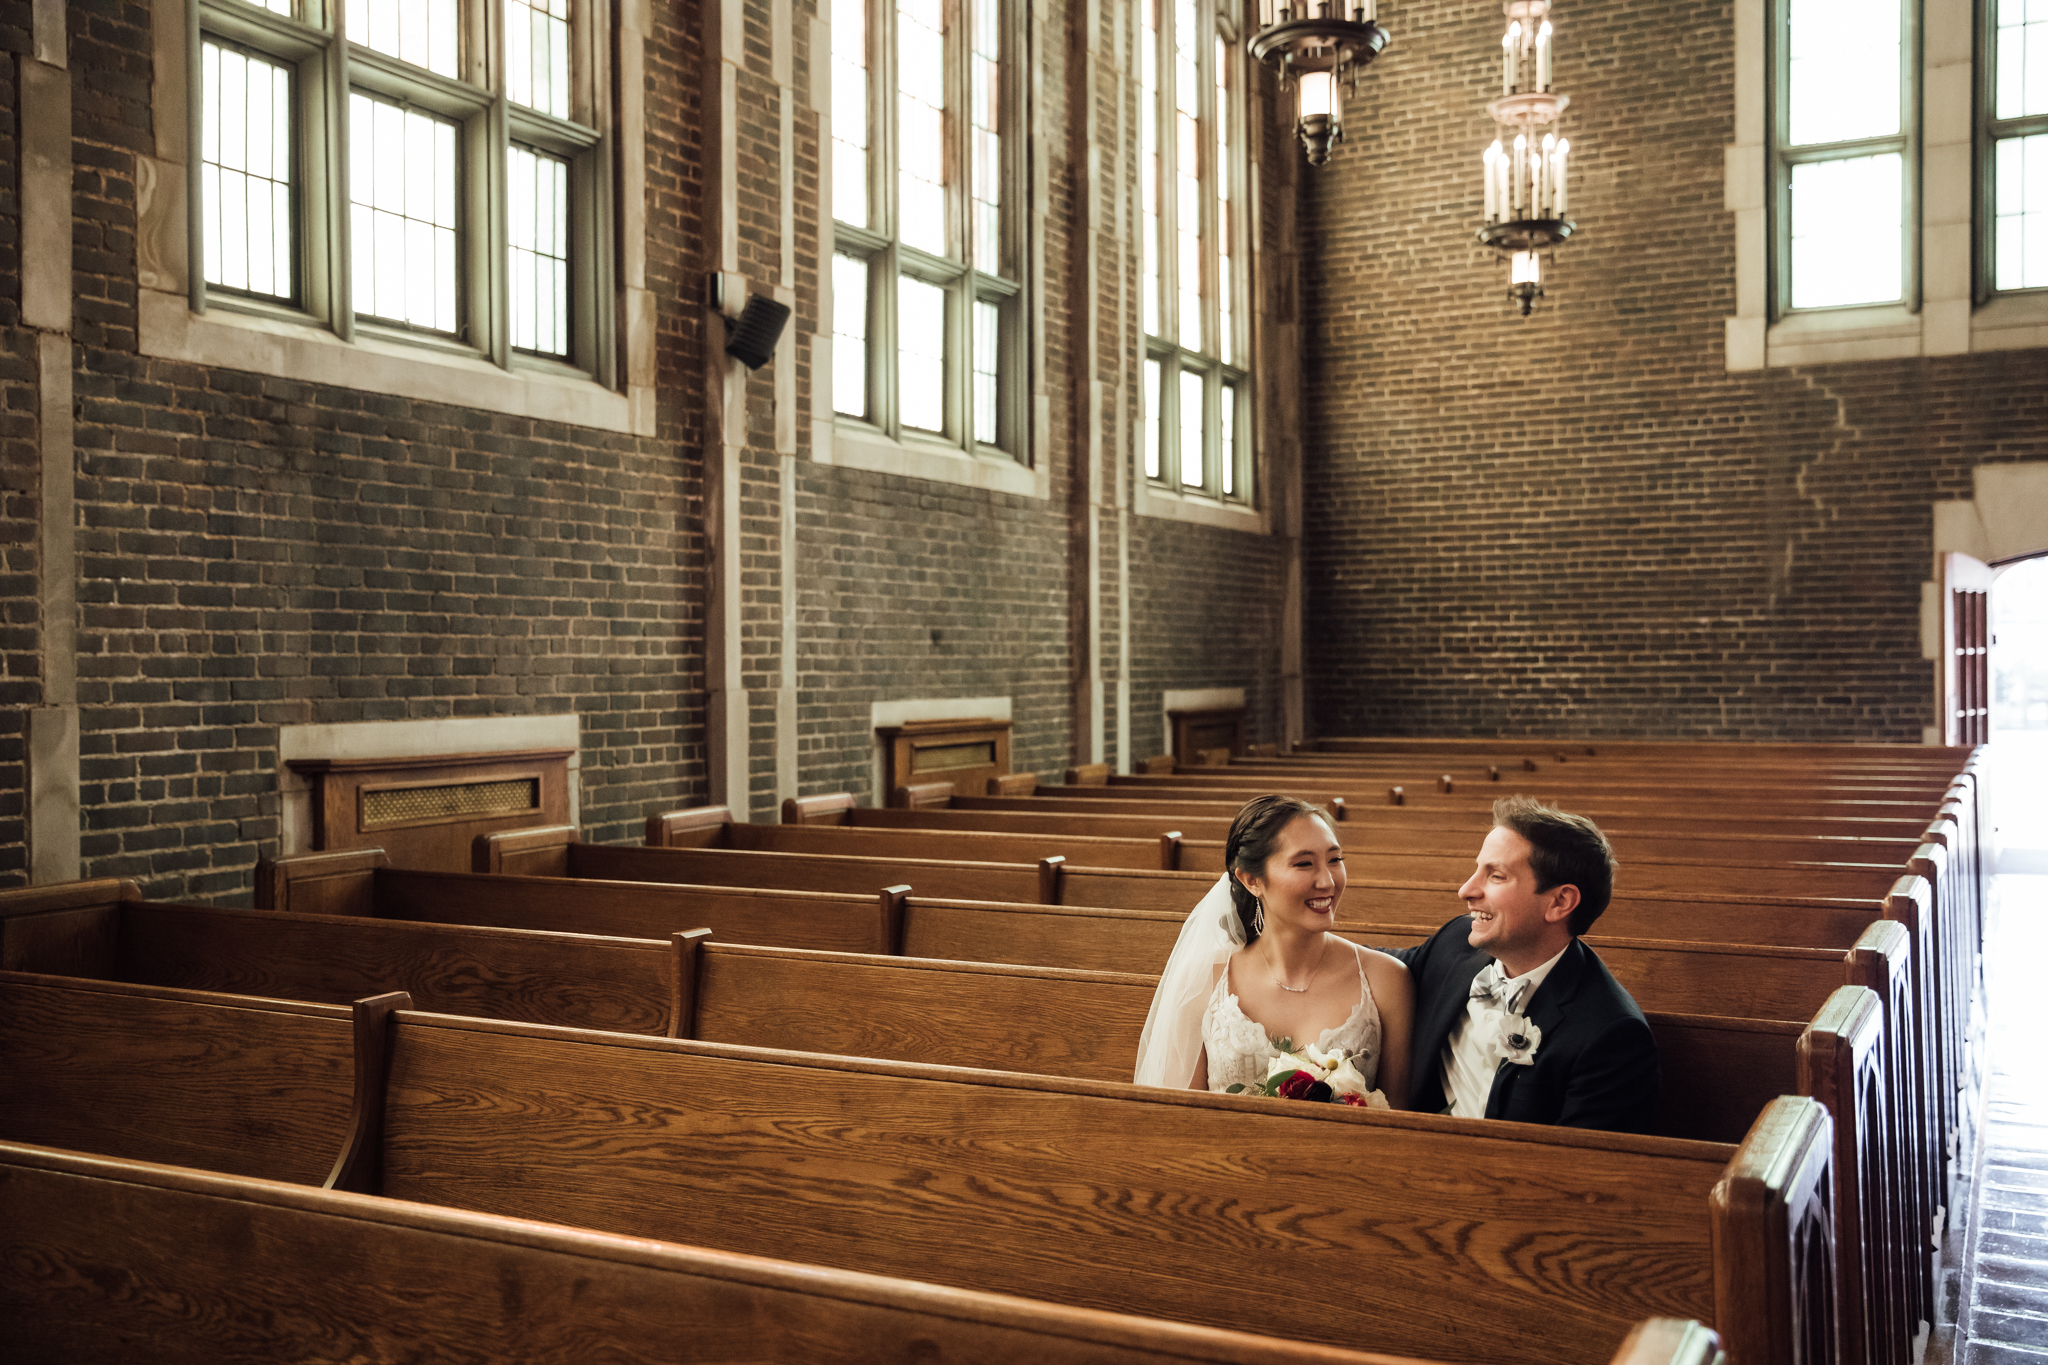 chattanooga-wedding-photographers-thewarmtharoundyou-waterhouse-pavilion-patten-chapel-wedding-sam-dusty (121 of 269).jpg